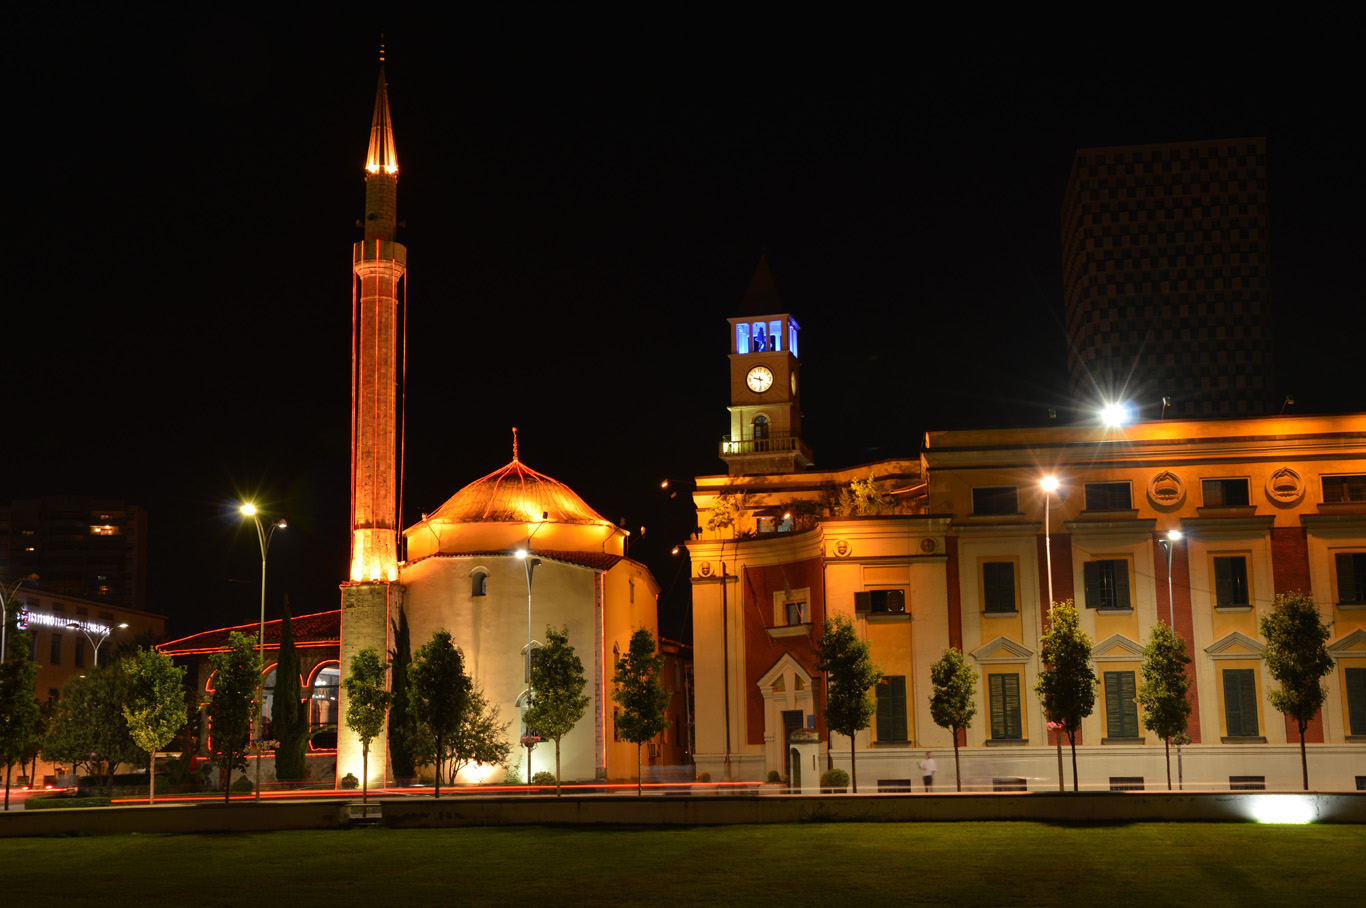 Et'hem Bey Mosque and Clock Tower